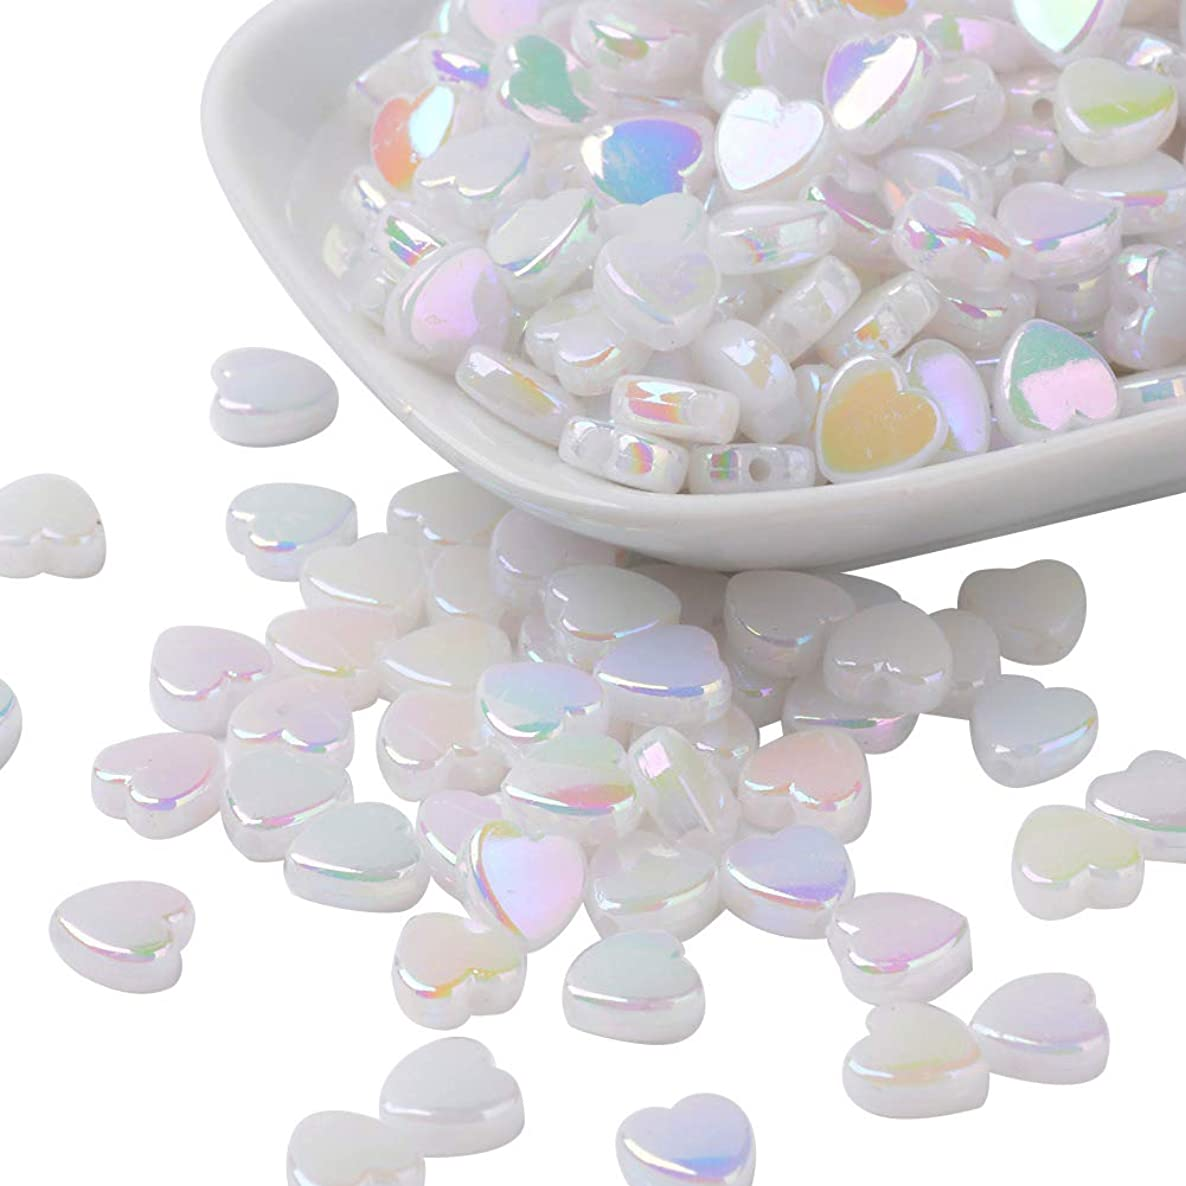 ARRICRAFT 500g 8mm Transparent Acrylic Beads Heart White Pony Beads for Bracelet Necklace Jewelry Design, About 2800pcs/500g